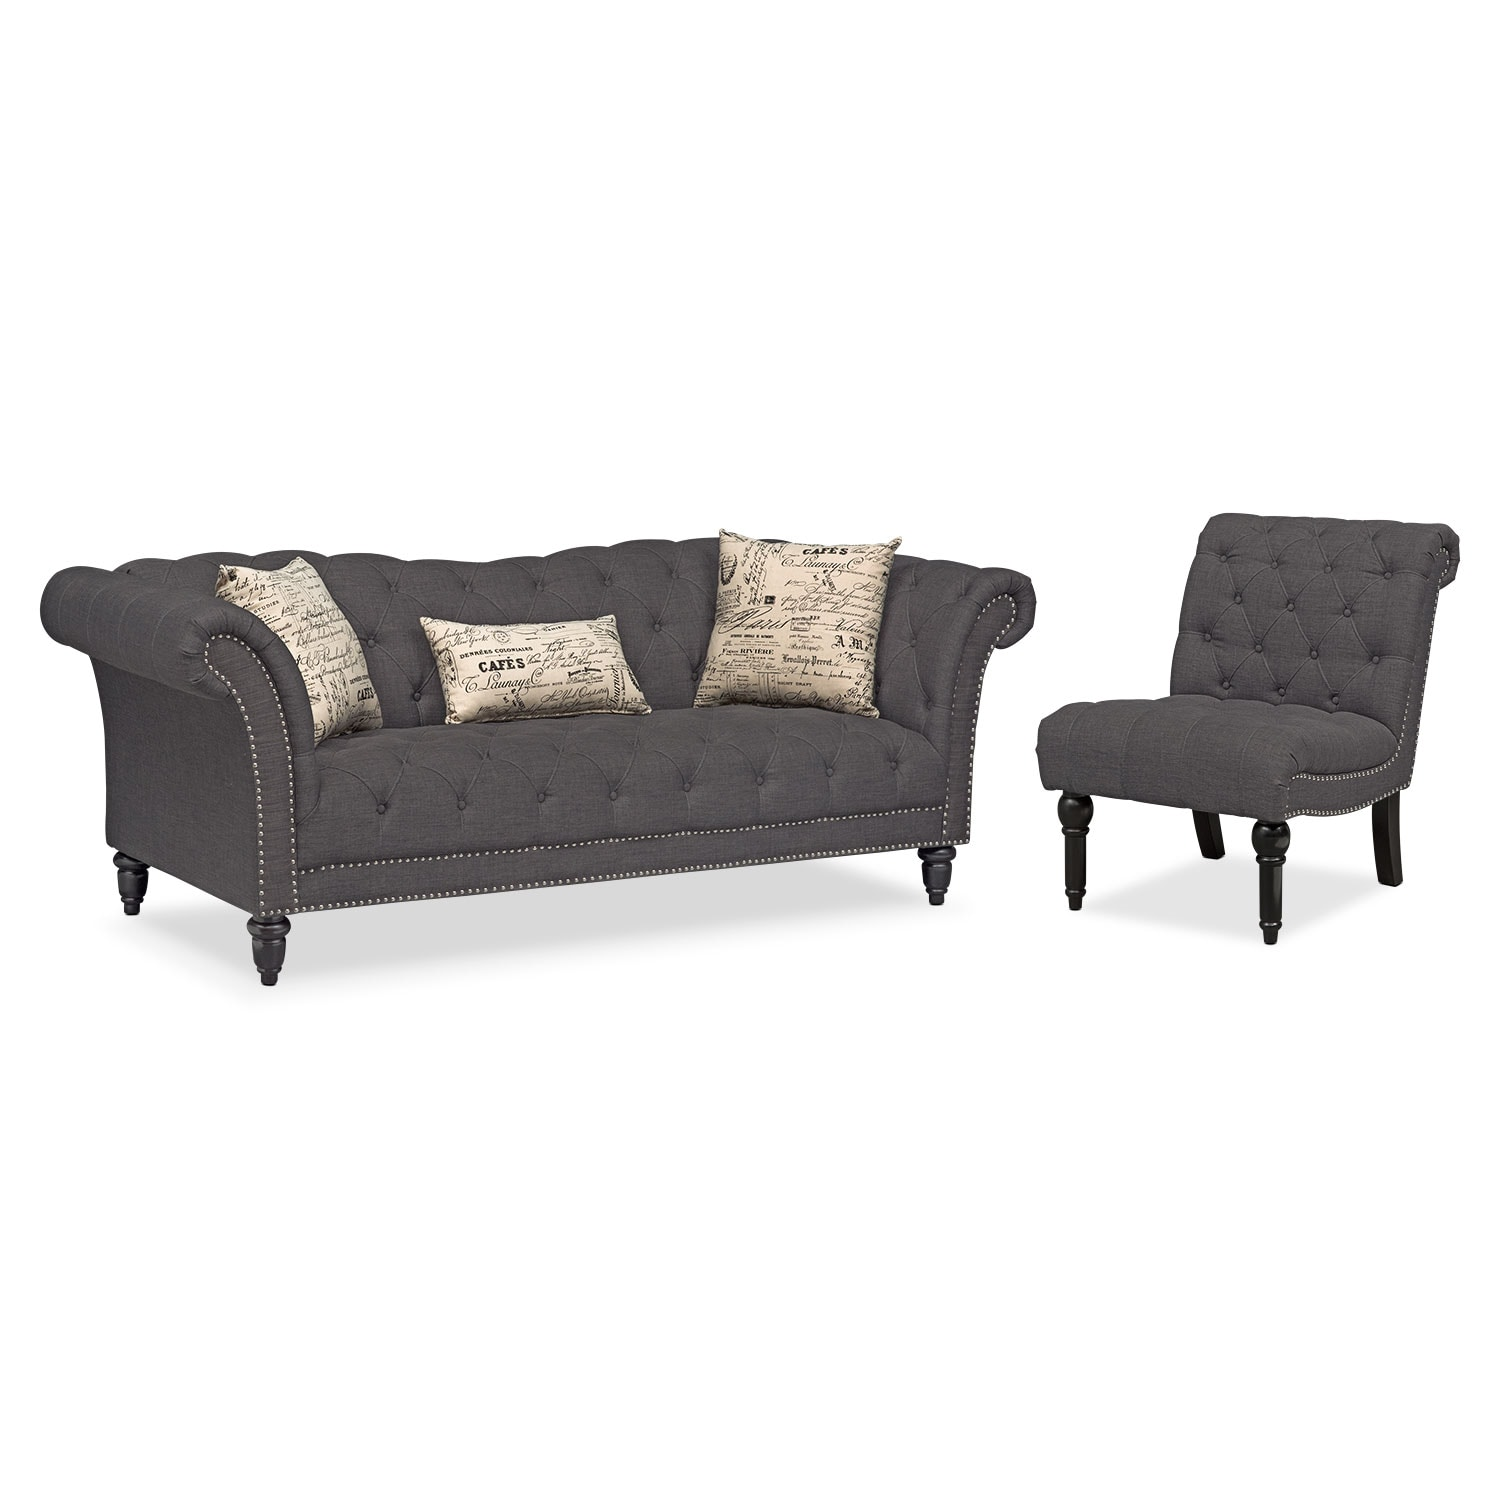 Marisol Sofa And Armless Chair   Charcoal